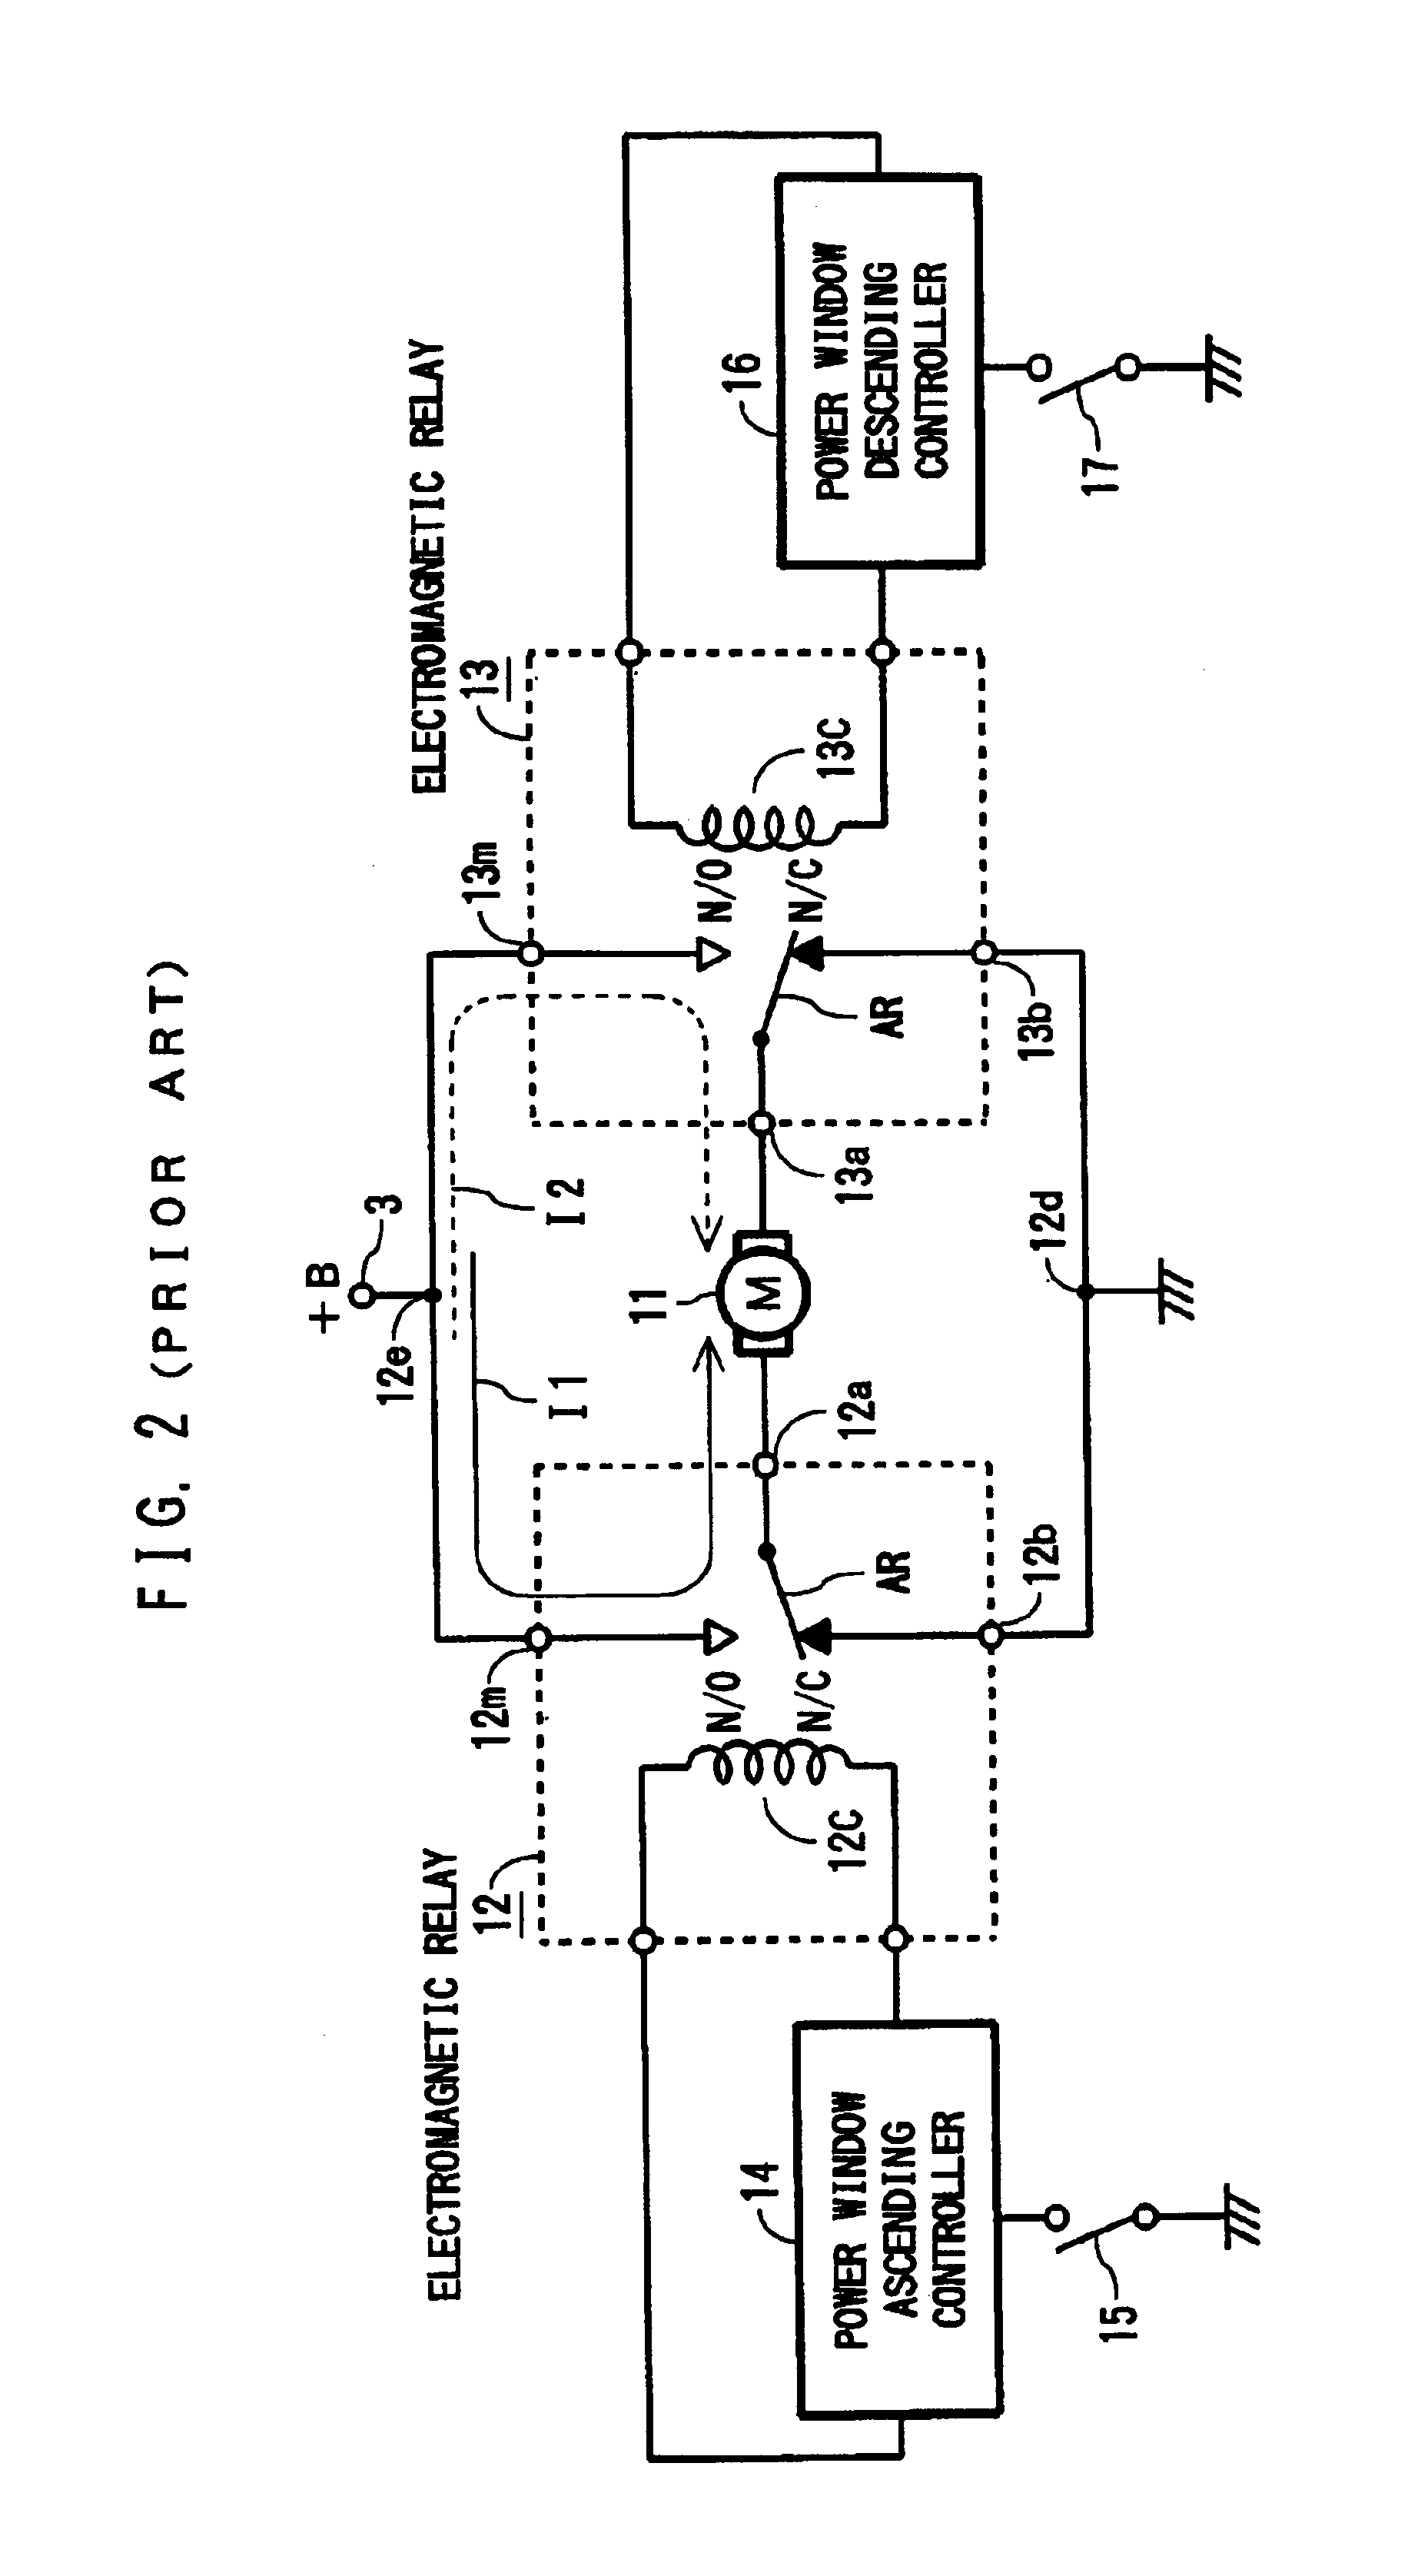 Patent US Electromagnetic Relay Google Patents - Diagram of electromagnetic relay